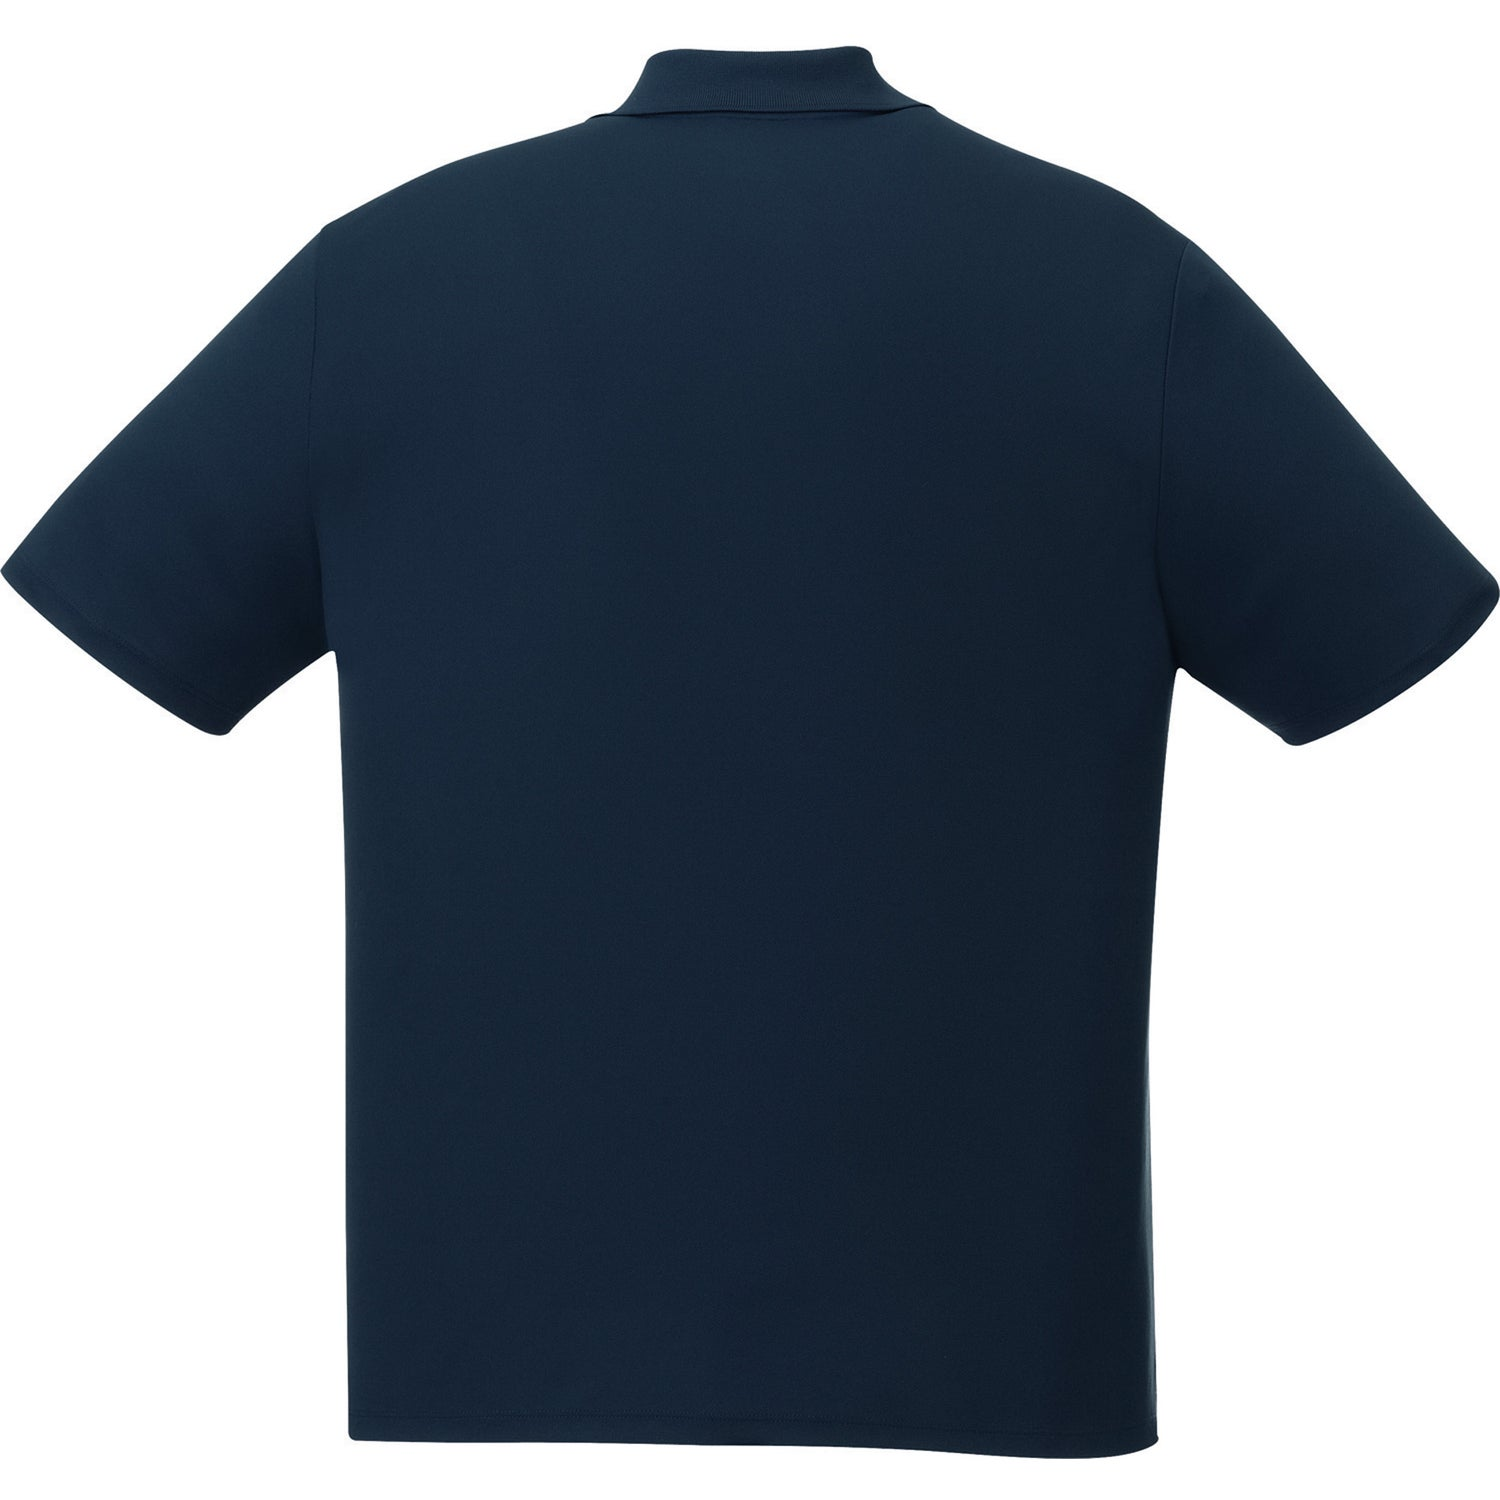 Edge short sleeve polo shirt by trimark men 39 s for Quality polo shirts with company logo